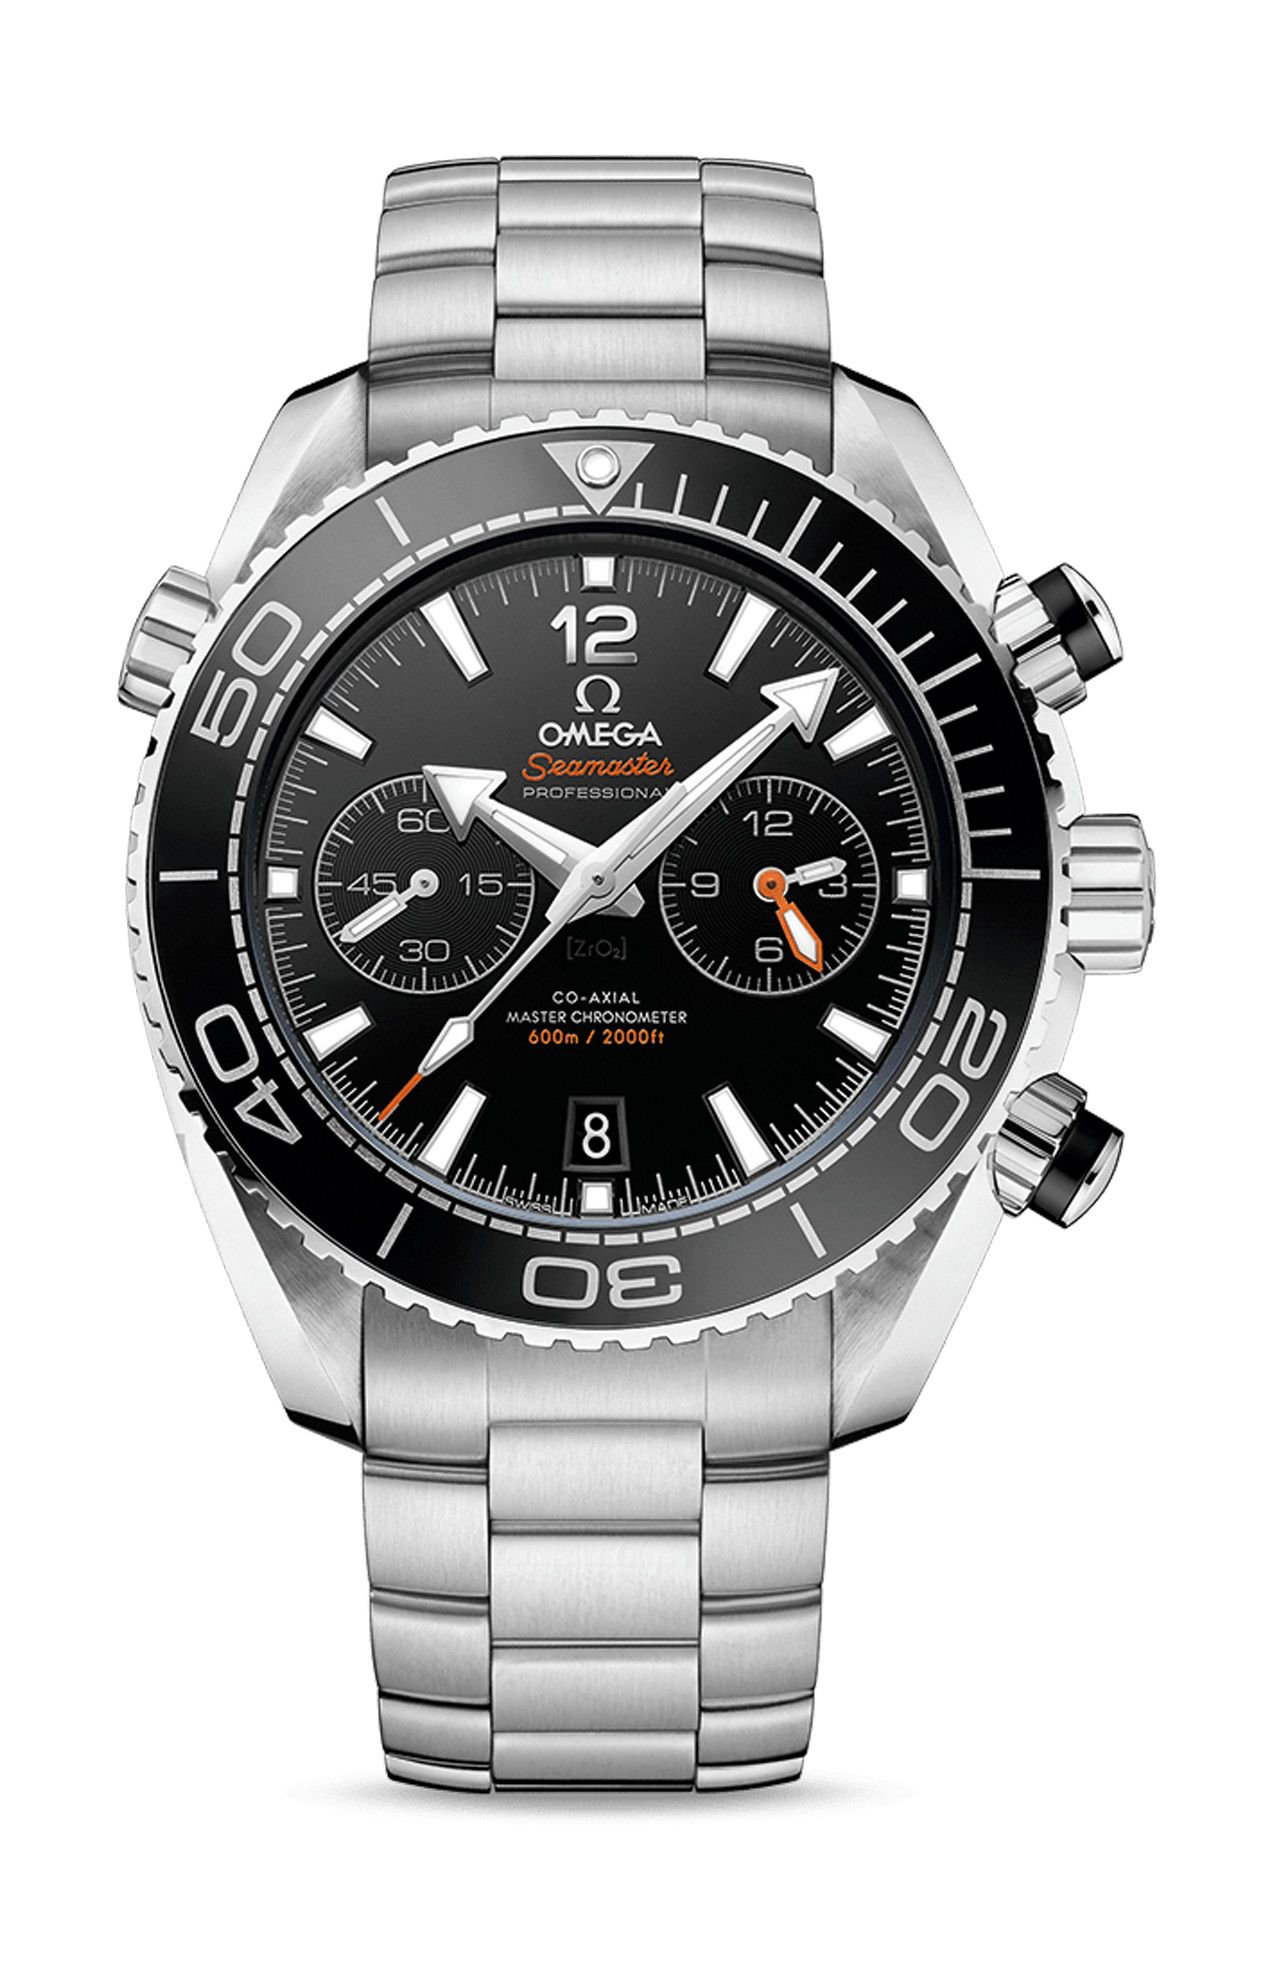 PLANET OCEAN 600M CO-AXIAL MASTER CHRONOMETER CHRONOGRAPH - 215.30.46.51.01.001